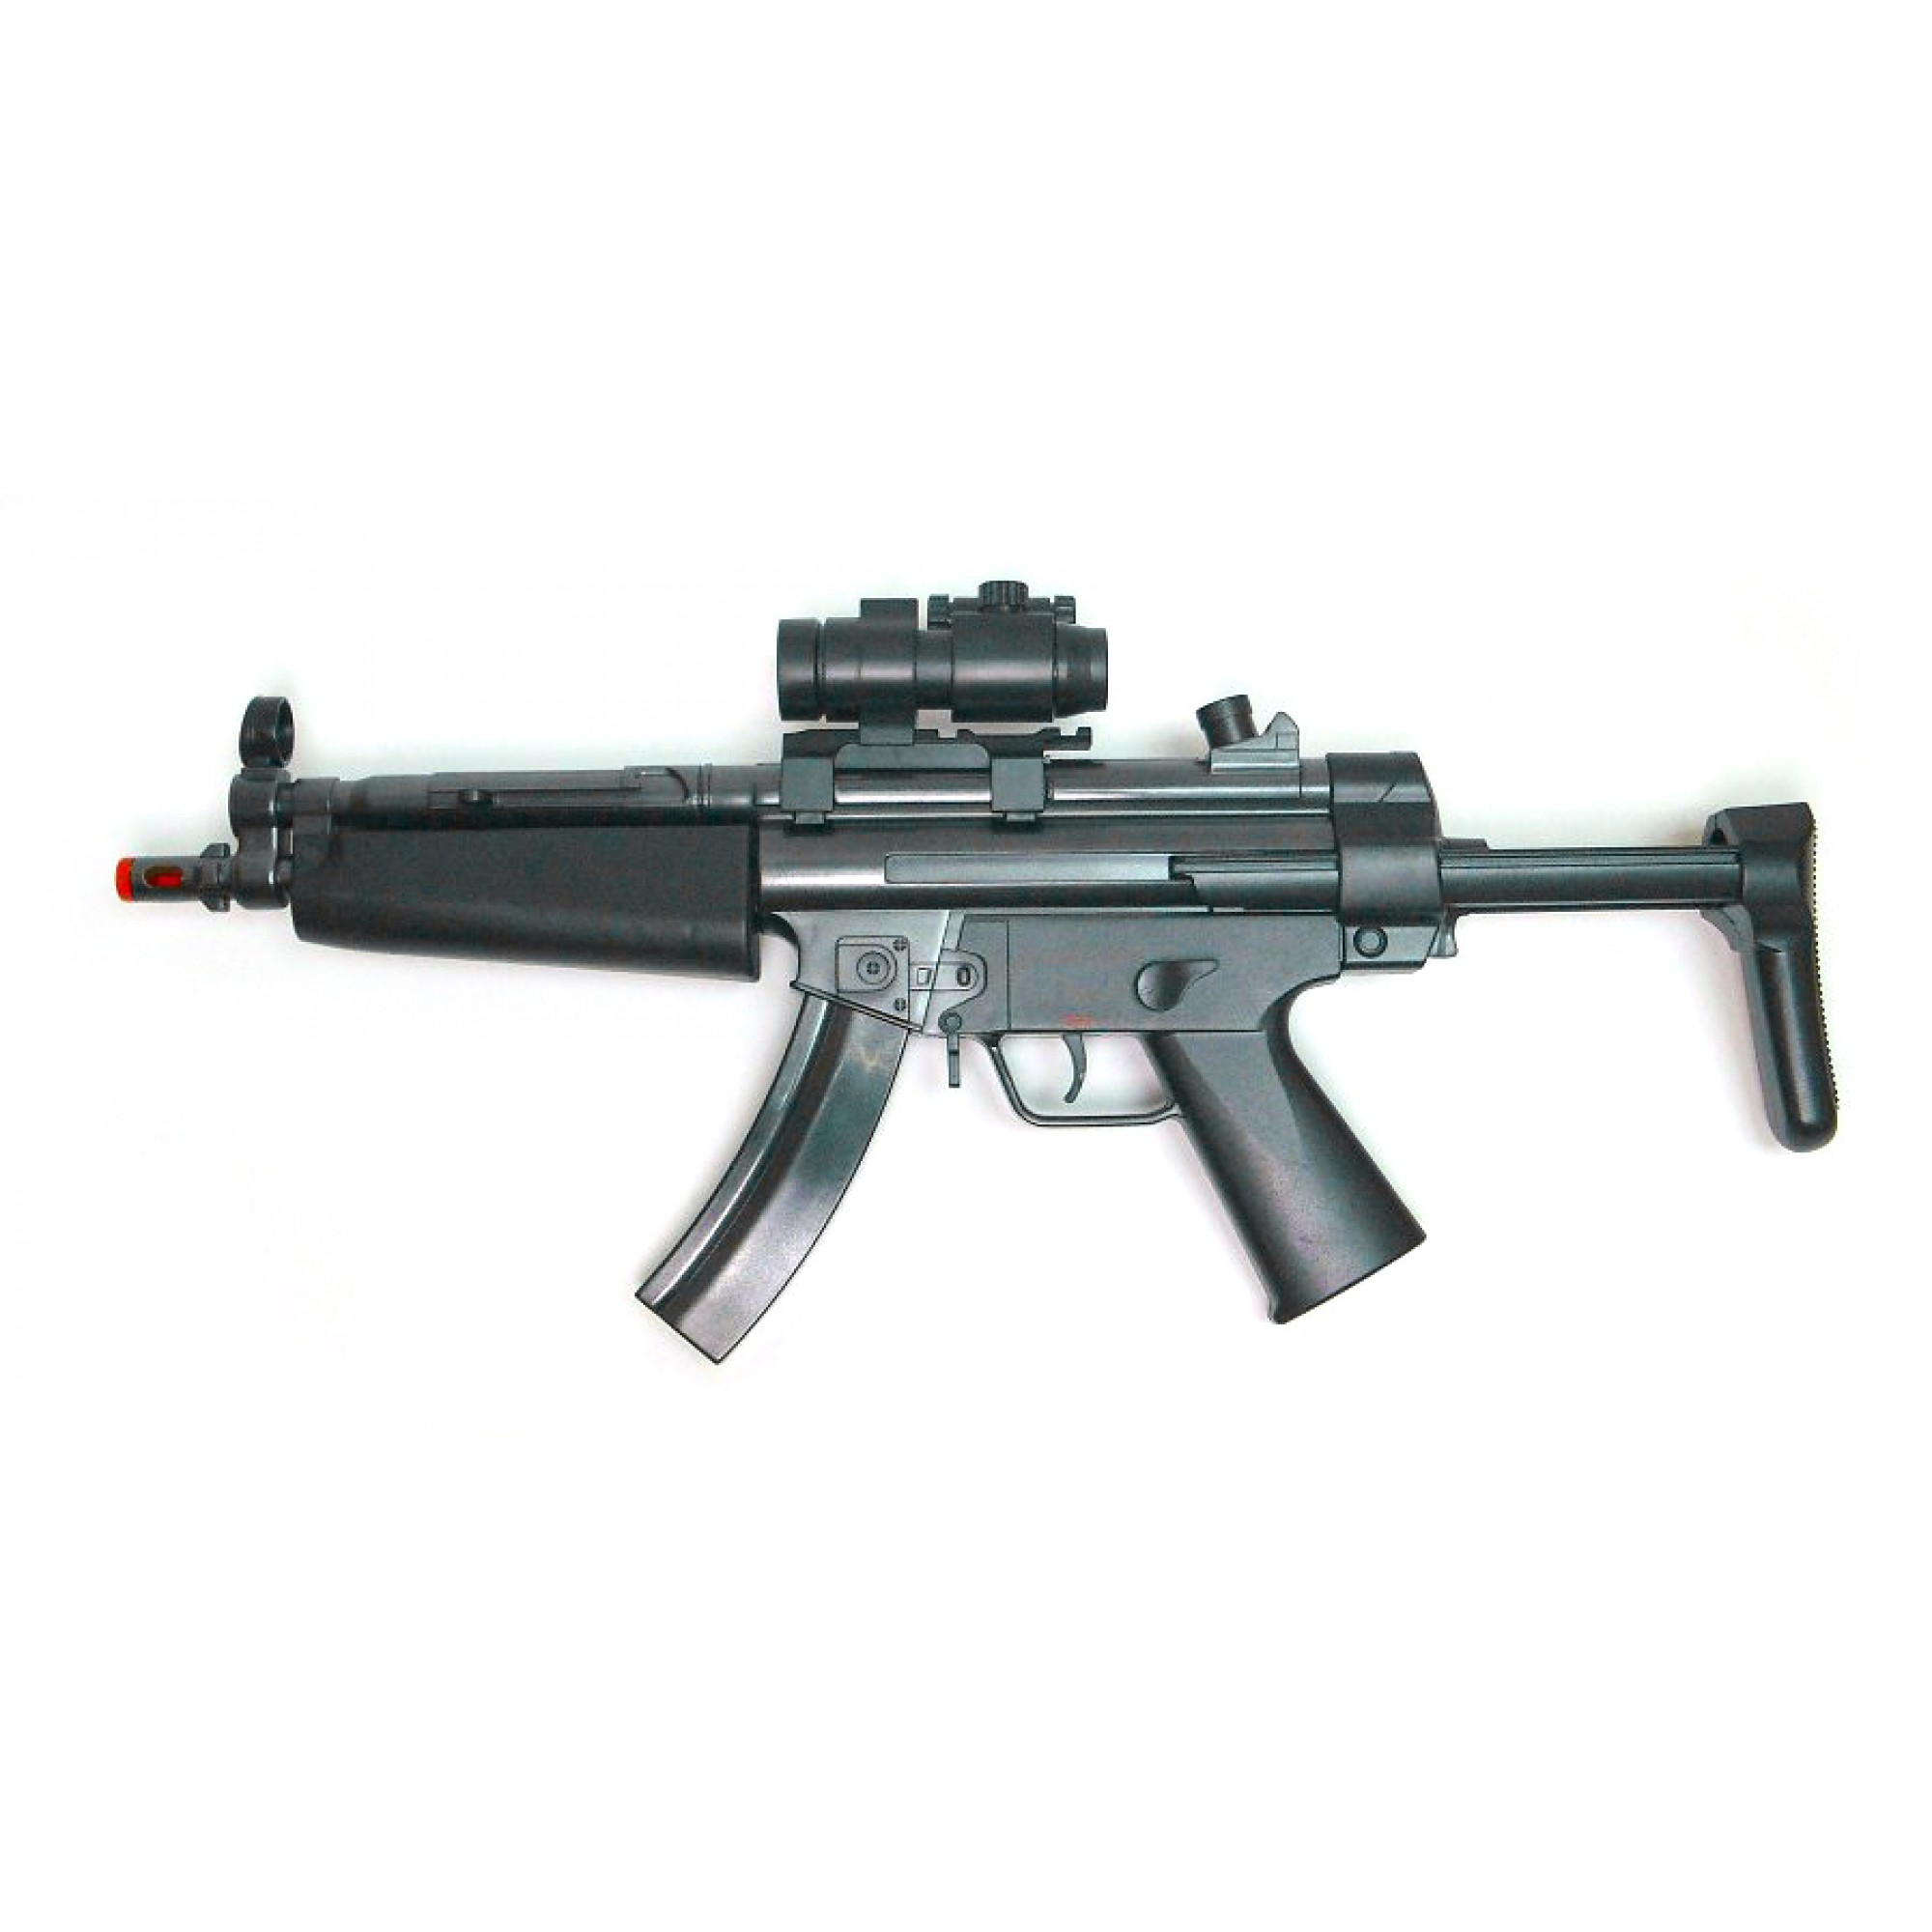 MP5 A5 W/Light, Sound, Vibration & Viewer